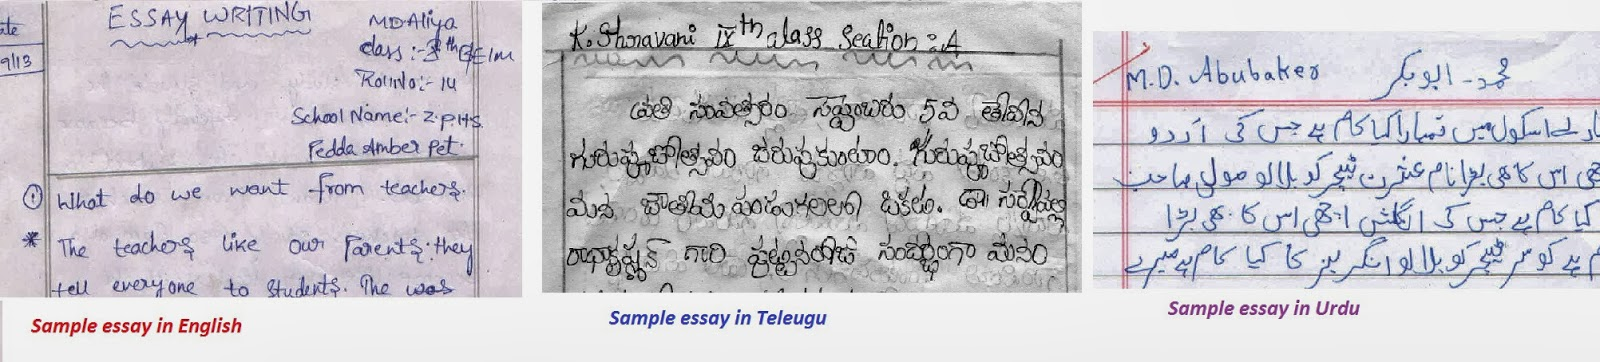 Thesis meaning in bengali - Dissertation meaning in bengali outlet